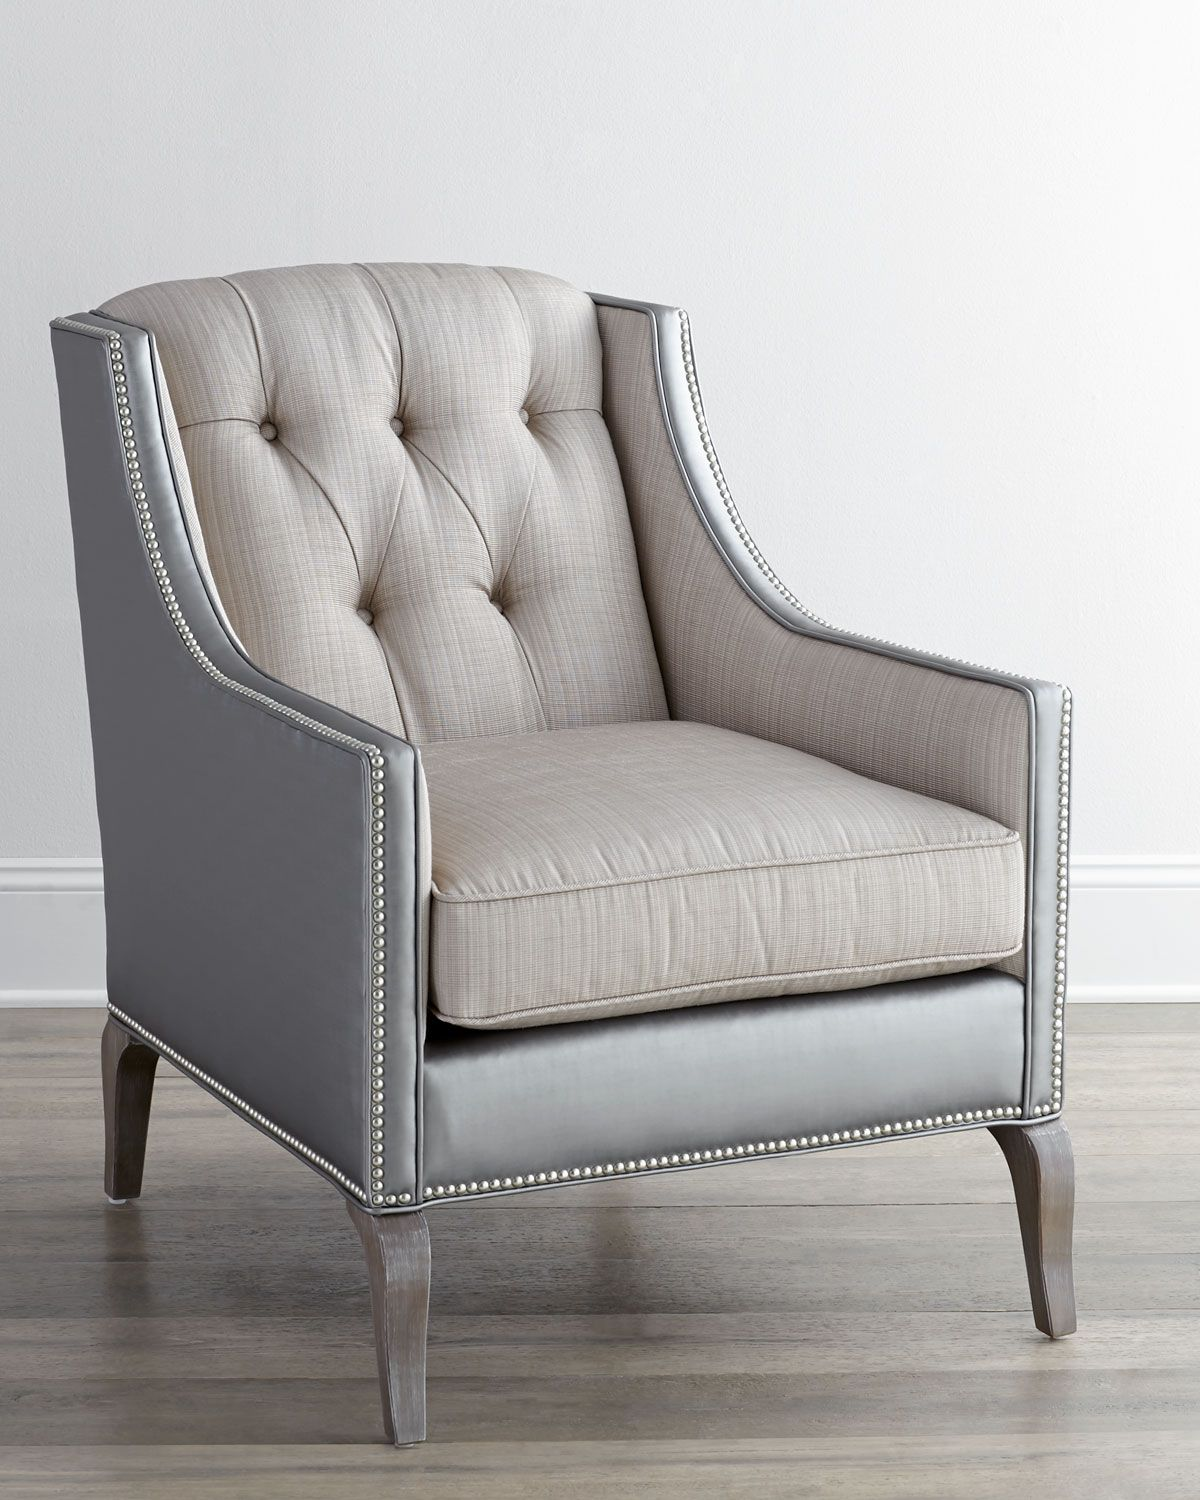 Chair features narrow arms and buttontufted back